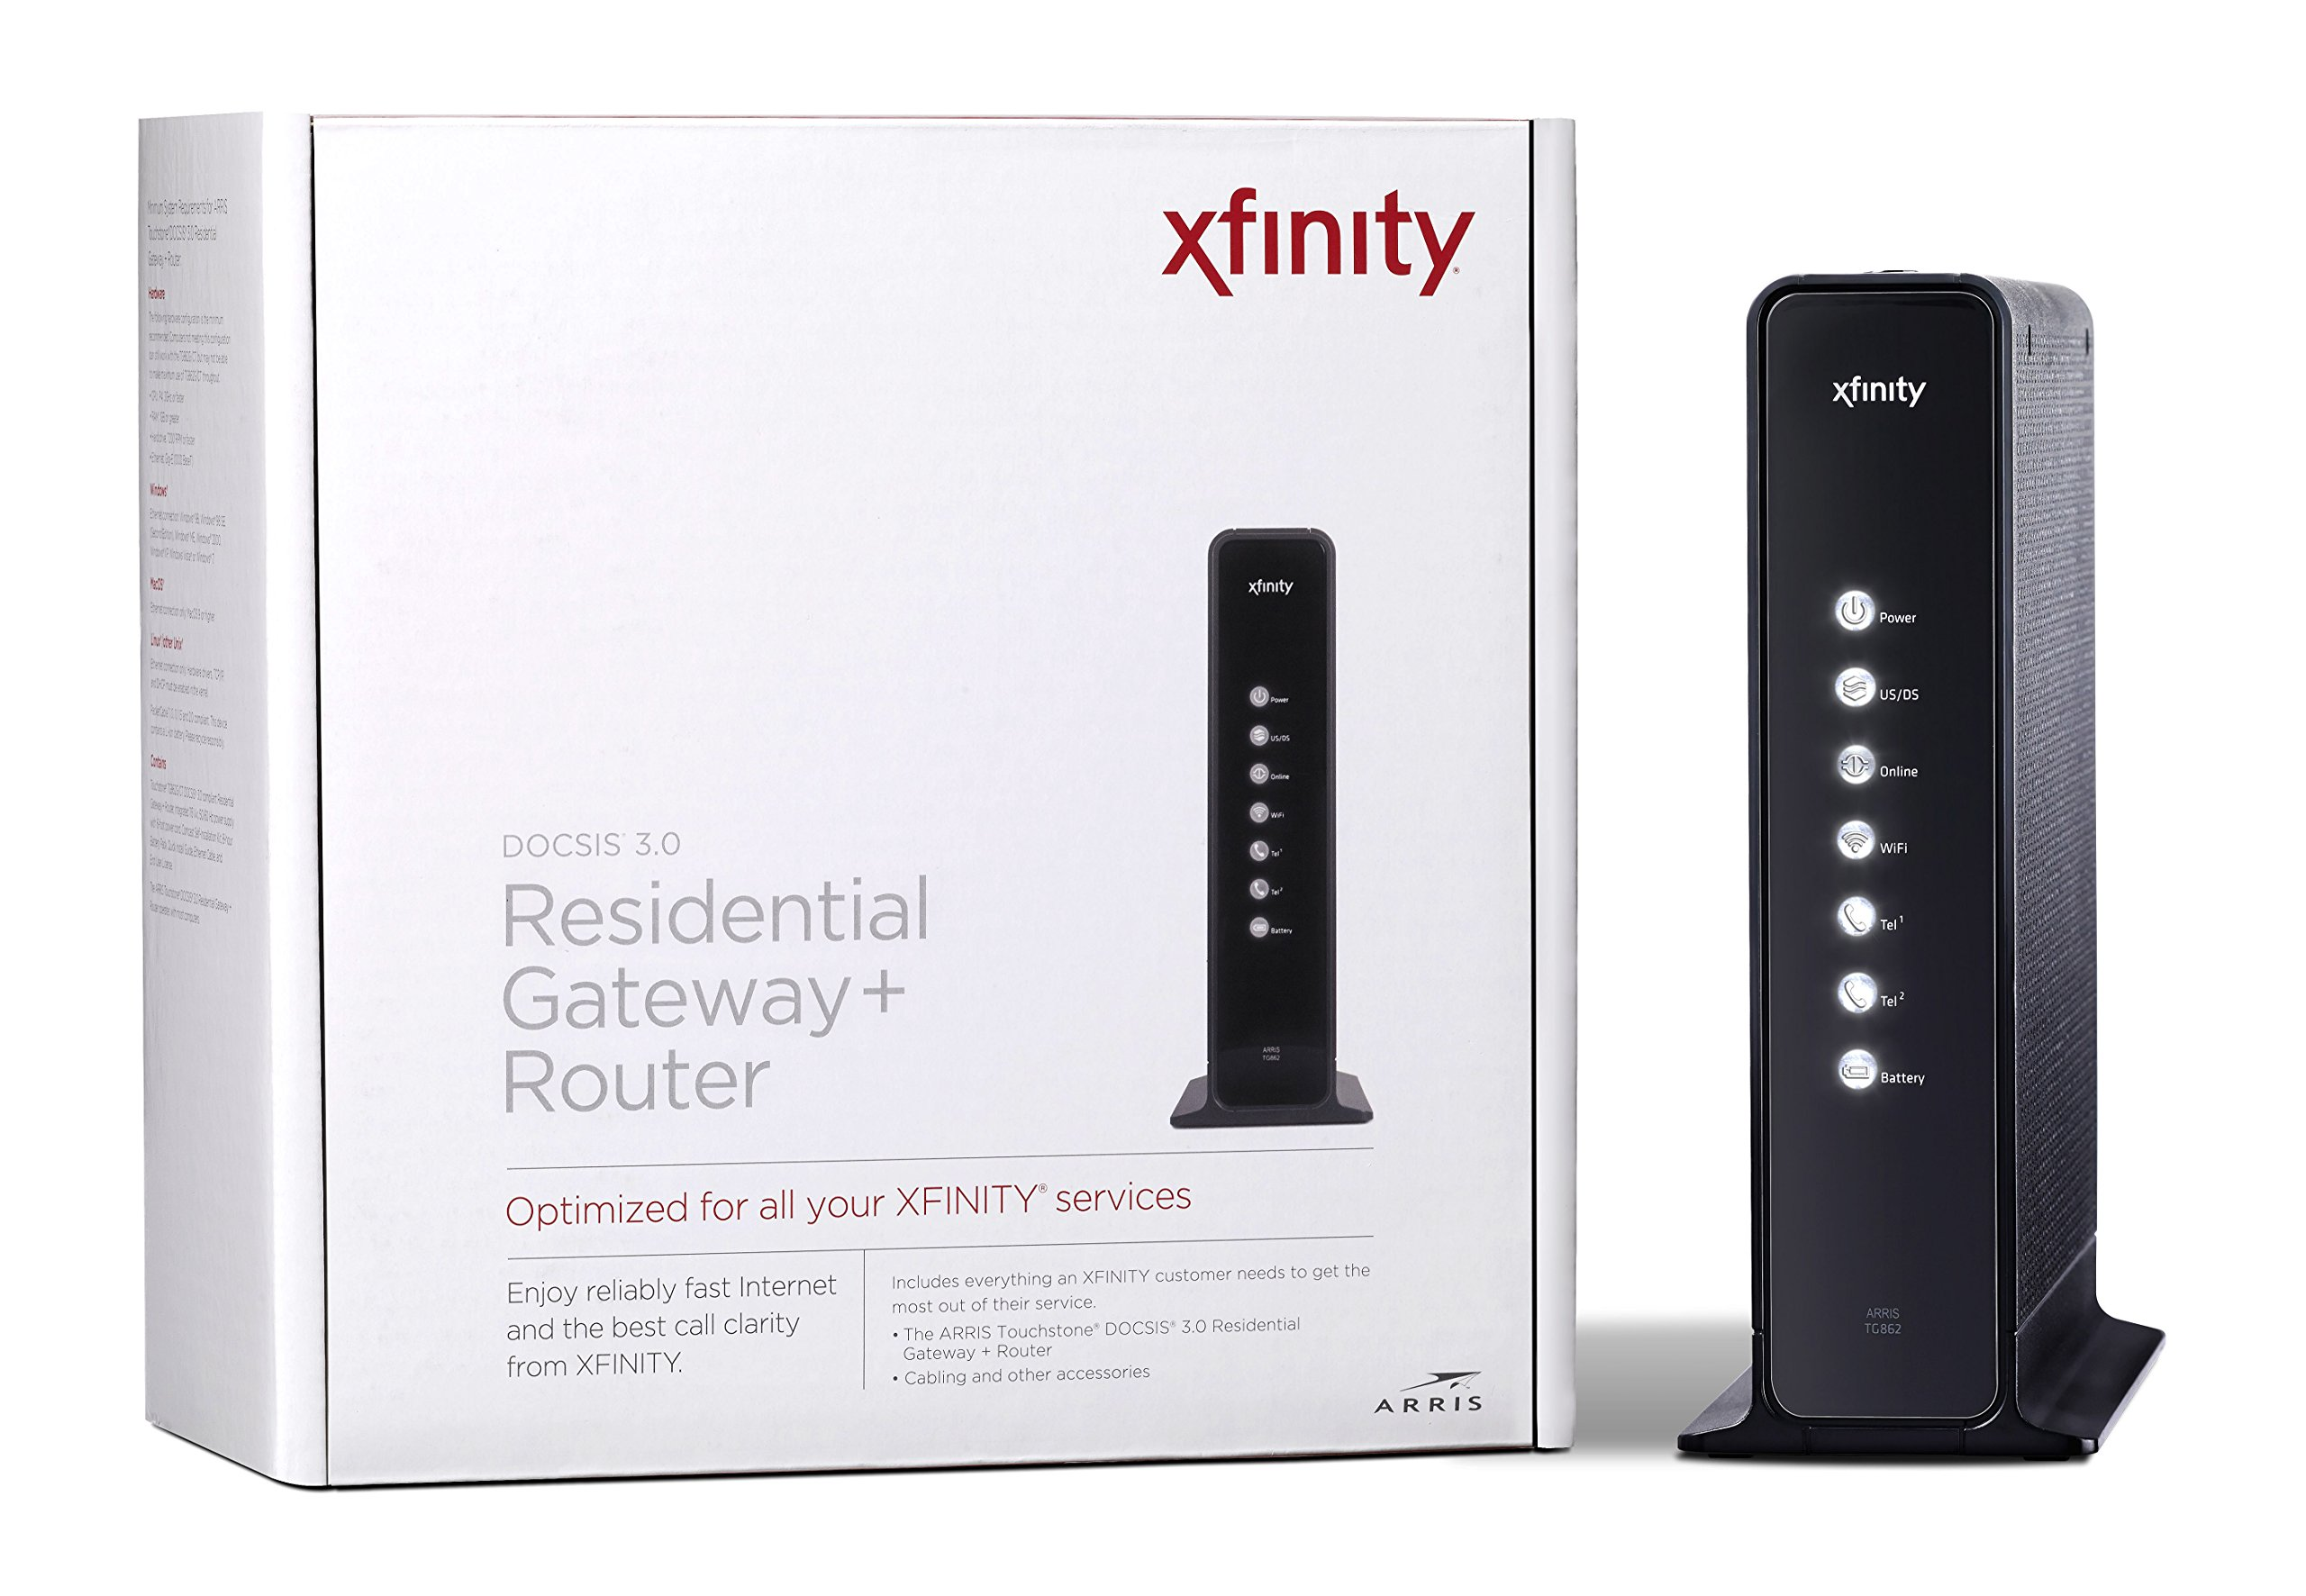 ARRIS DOCSIS 3.0 Residential Gateway with 802.11n/ 4 GigaPort Router/ 2-Voice Lines Certified with Comcast (TG862G-CT)